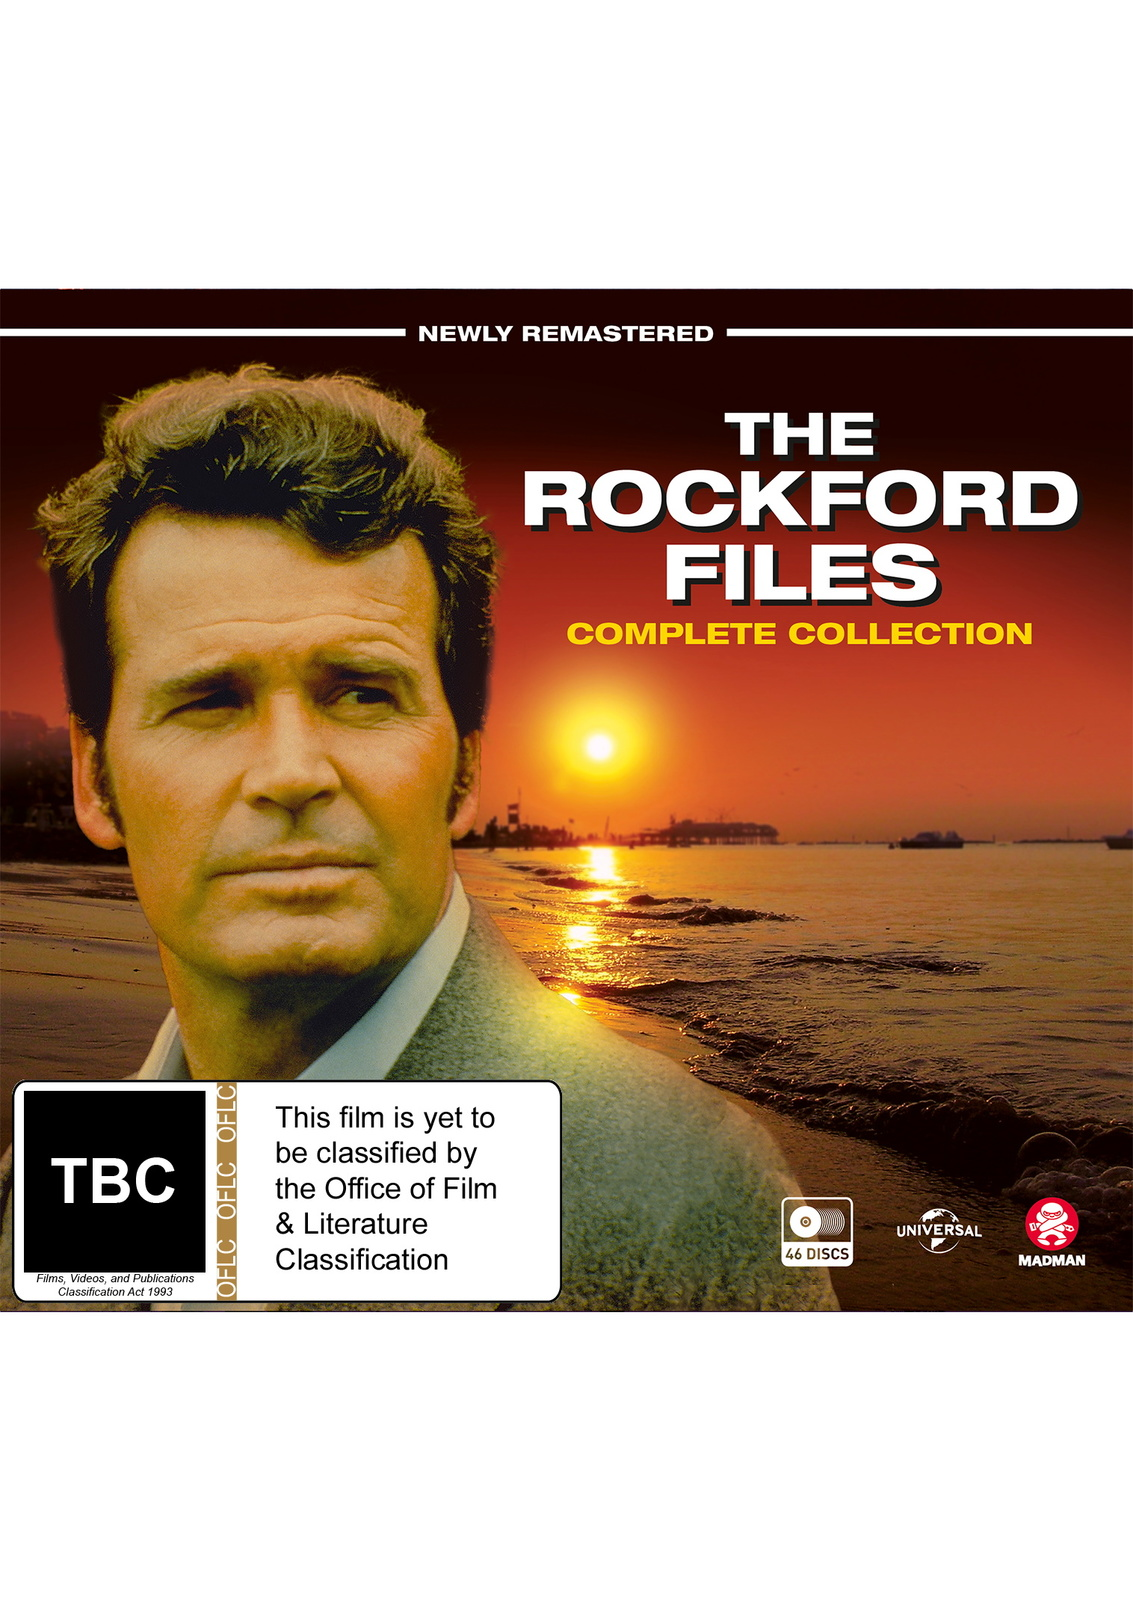 The Rockford Files Complete Box Set on DVD image